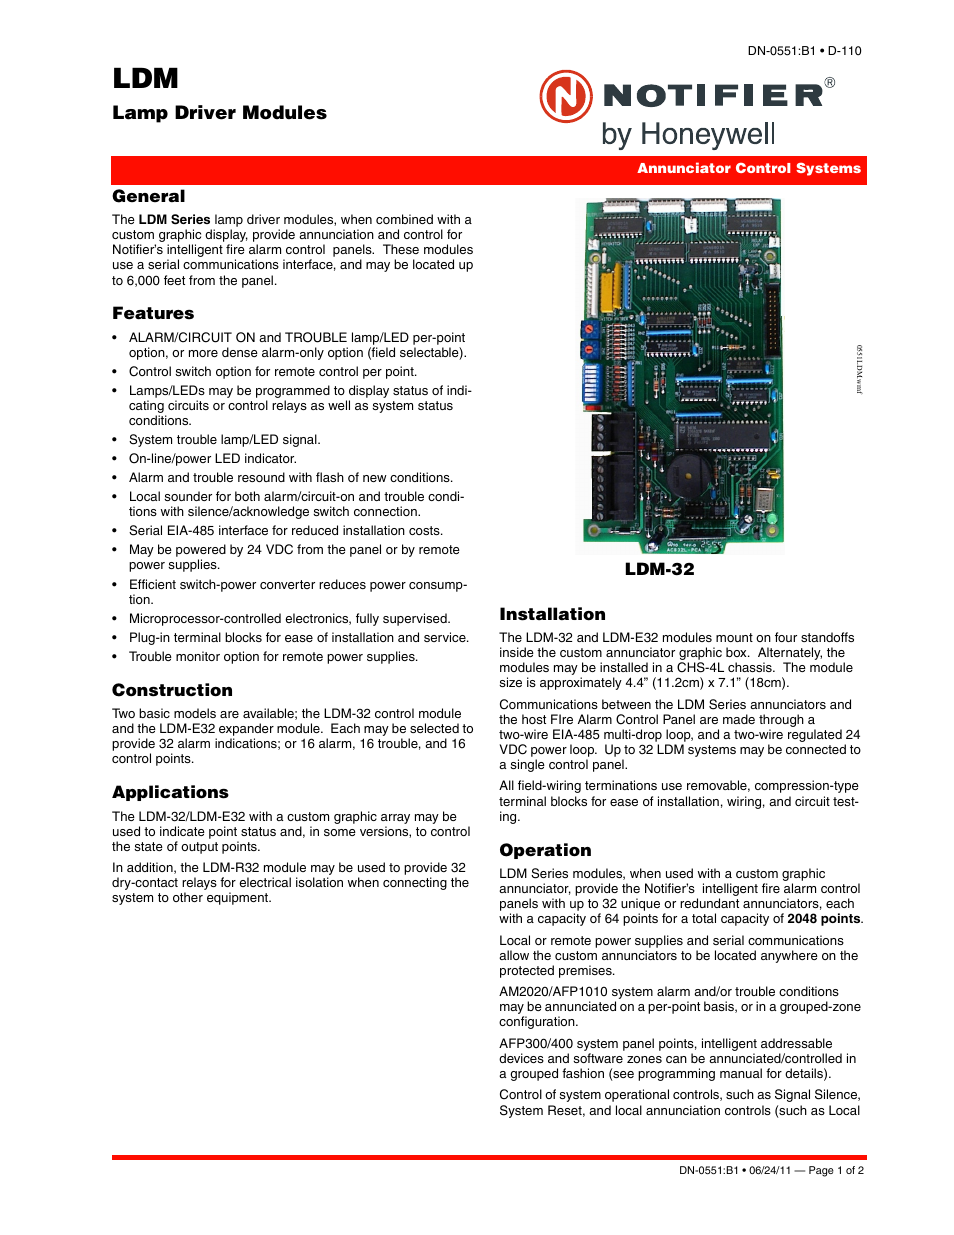 notifier ldm page1 notifier ldm user manual 2 pages notifier control module wiring diagram at eliteediting.co